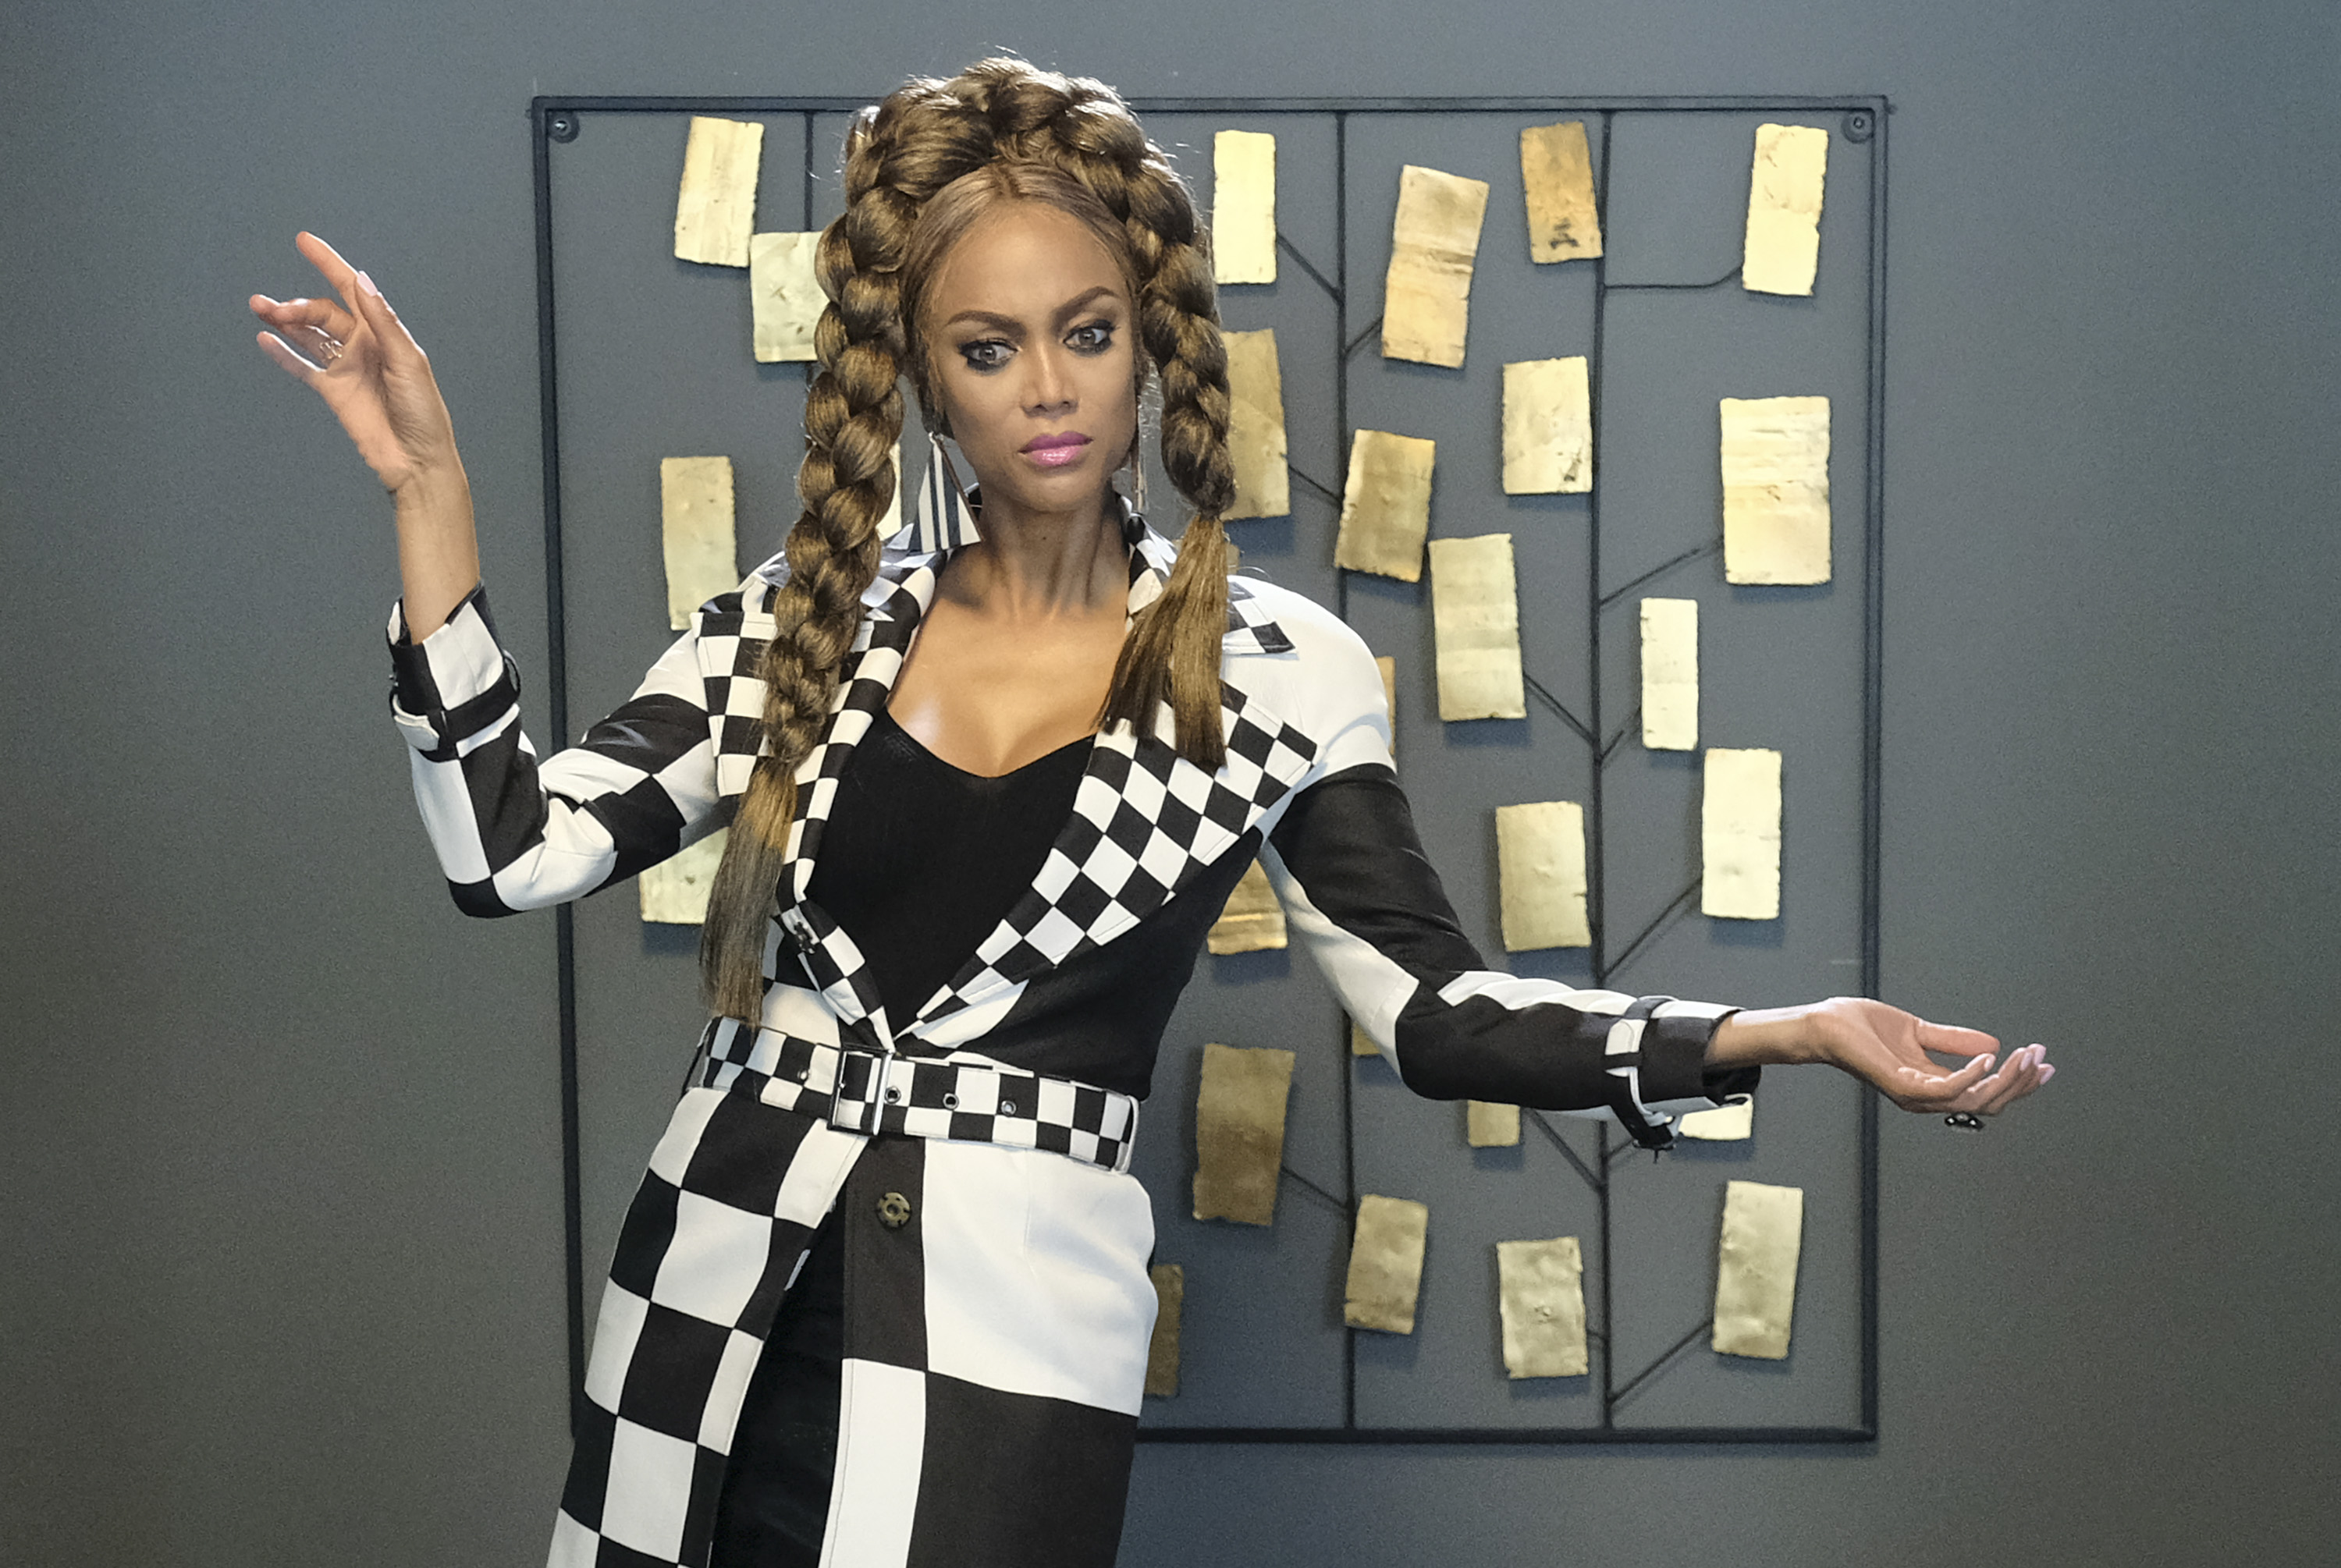 """LIFE-SIZE 2: A CHRISTMAS EVE - FreeformÕs annual """"25 Days of Christmas"""" programming event will be a lot brighter as Tyra Banks reprises her iconic role of ÒEveÓ in the highly anticipated sequel """"Life-Size 2,"""" on SUNDAY, DEC. 2, at 9:00 - 11:00 p.m. EST/PST. In the sequel """"Eve"""" returns to help Grace Manning (Francia Raisa), a 20 something CEO of Marathon Toys who is in over her head. (Disney Channel/Guy D'Alema) TYRA BANKS"""